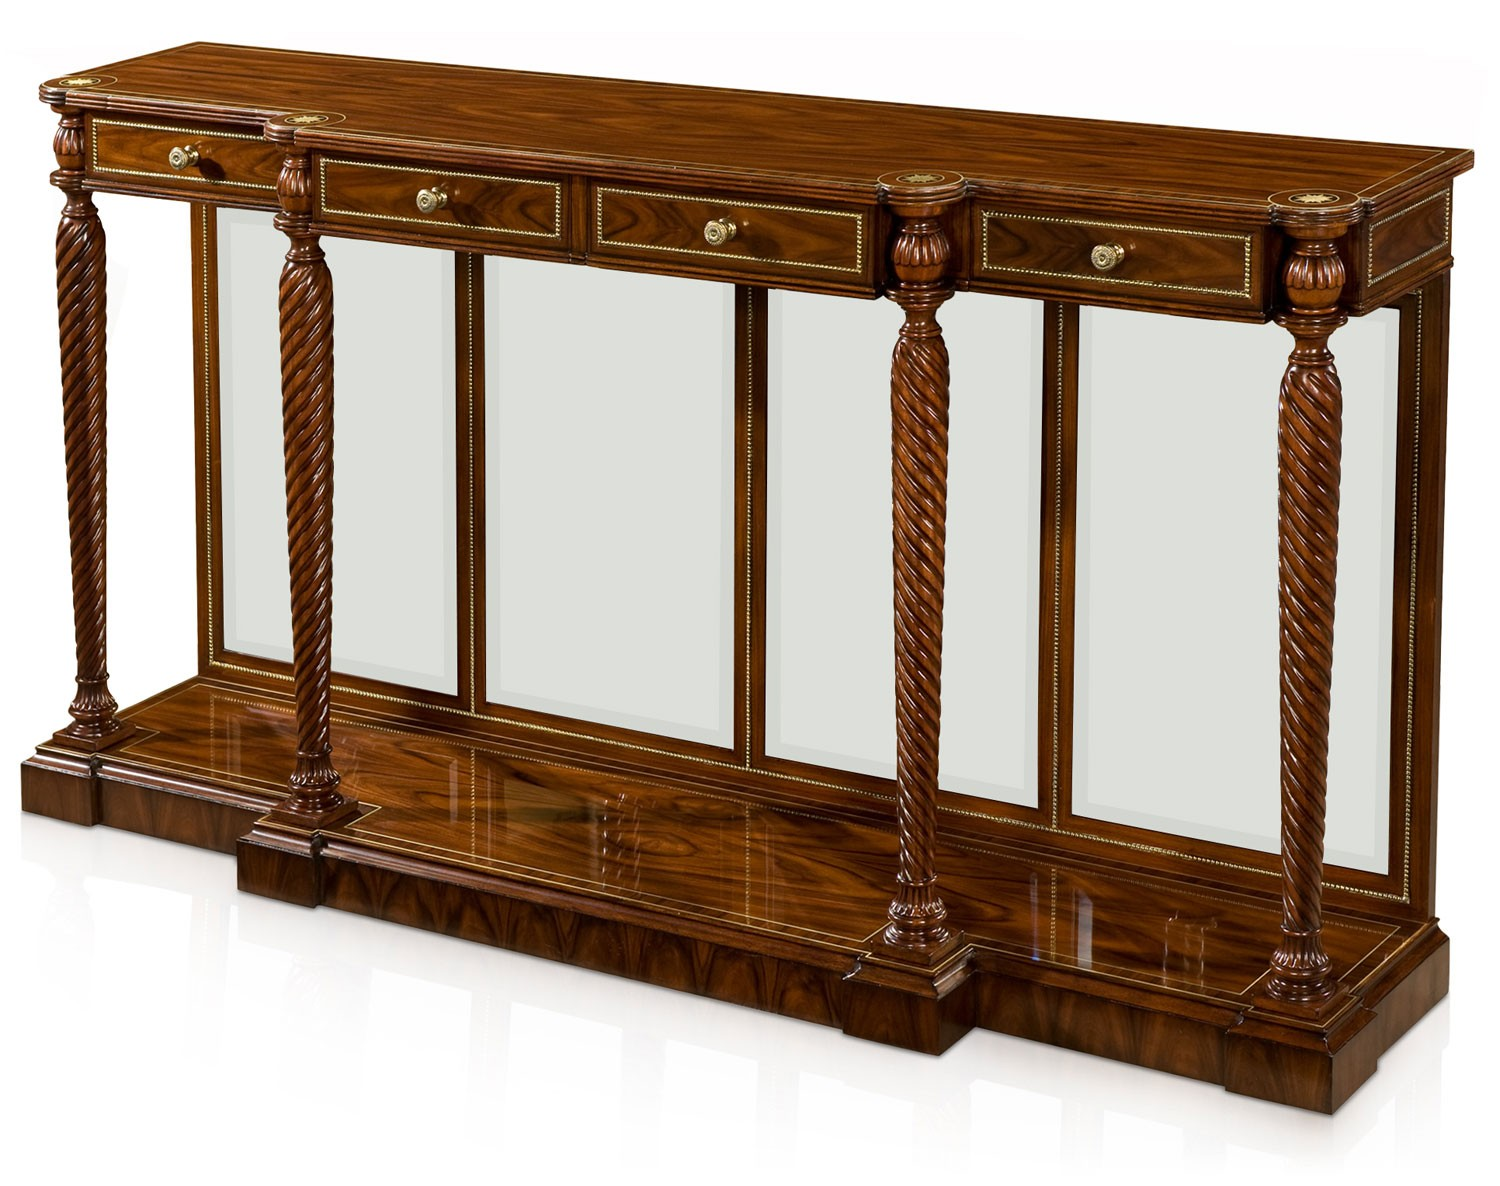 Rosewood console table